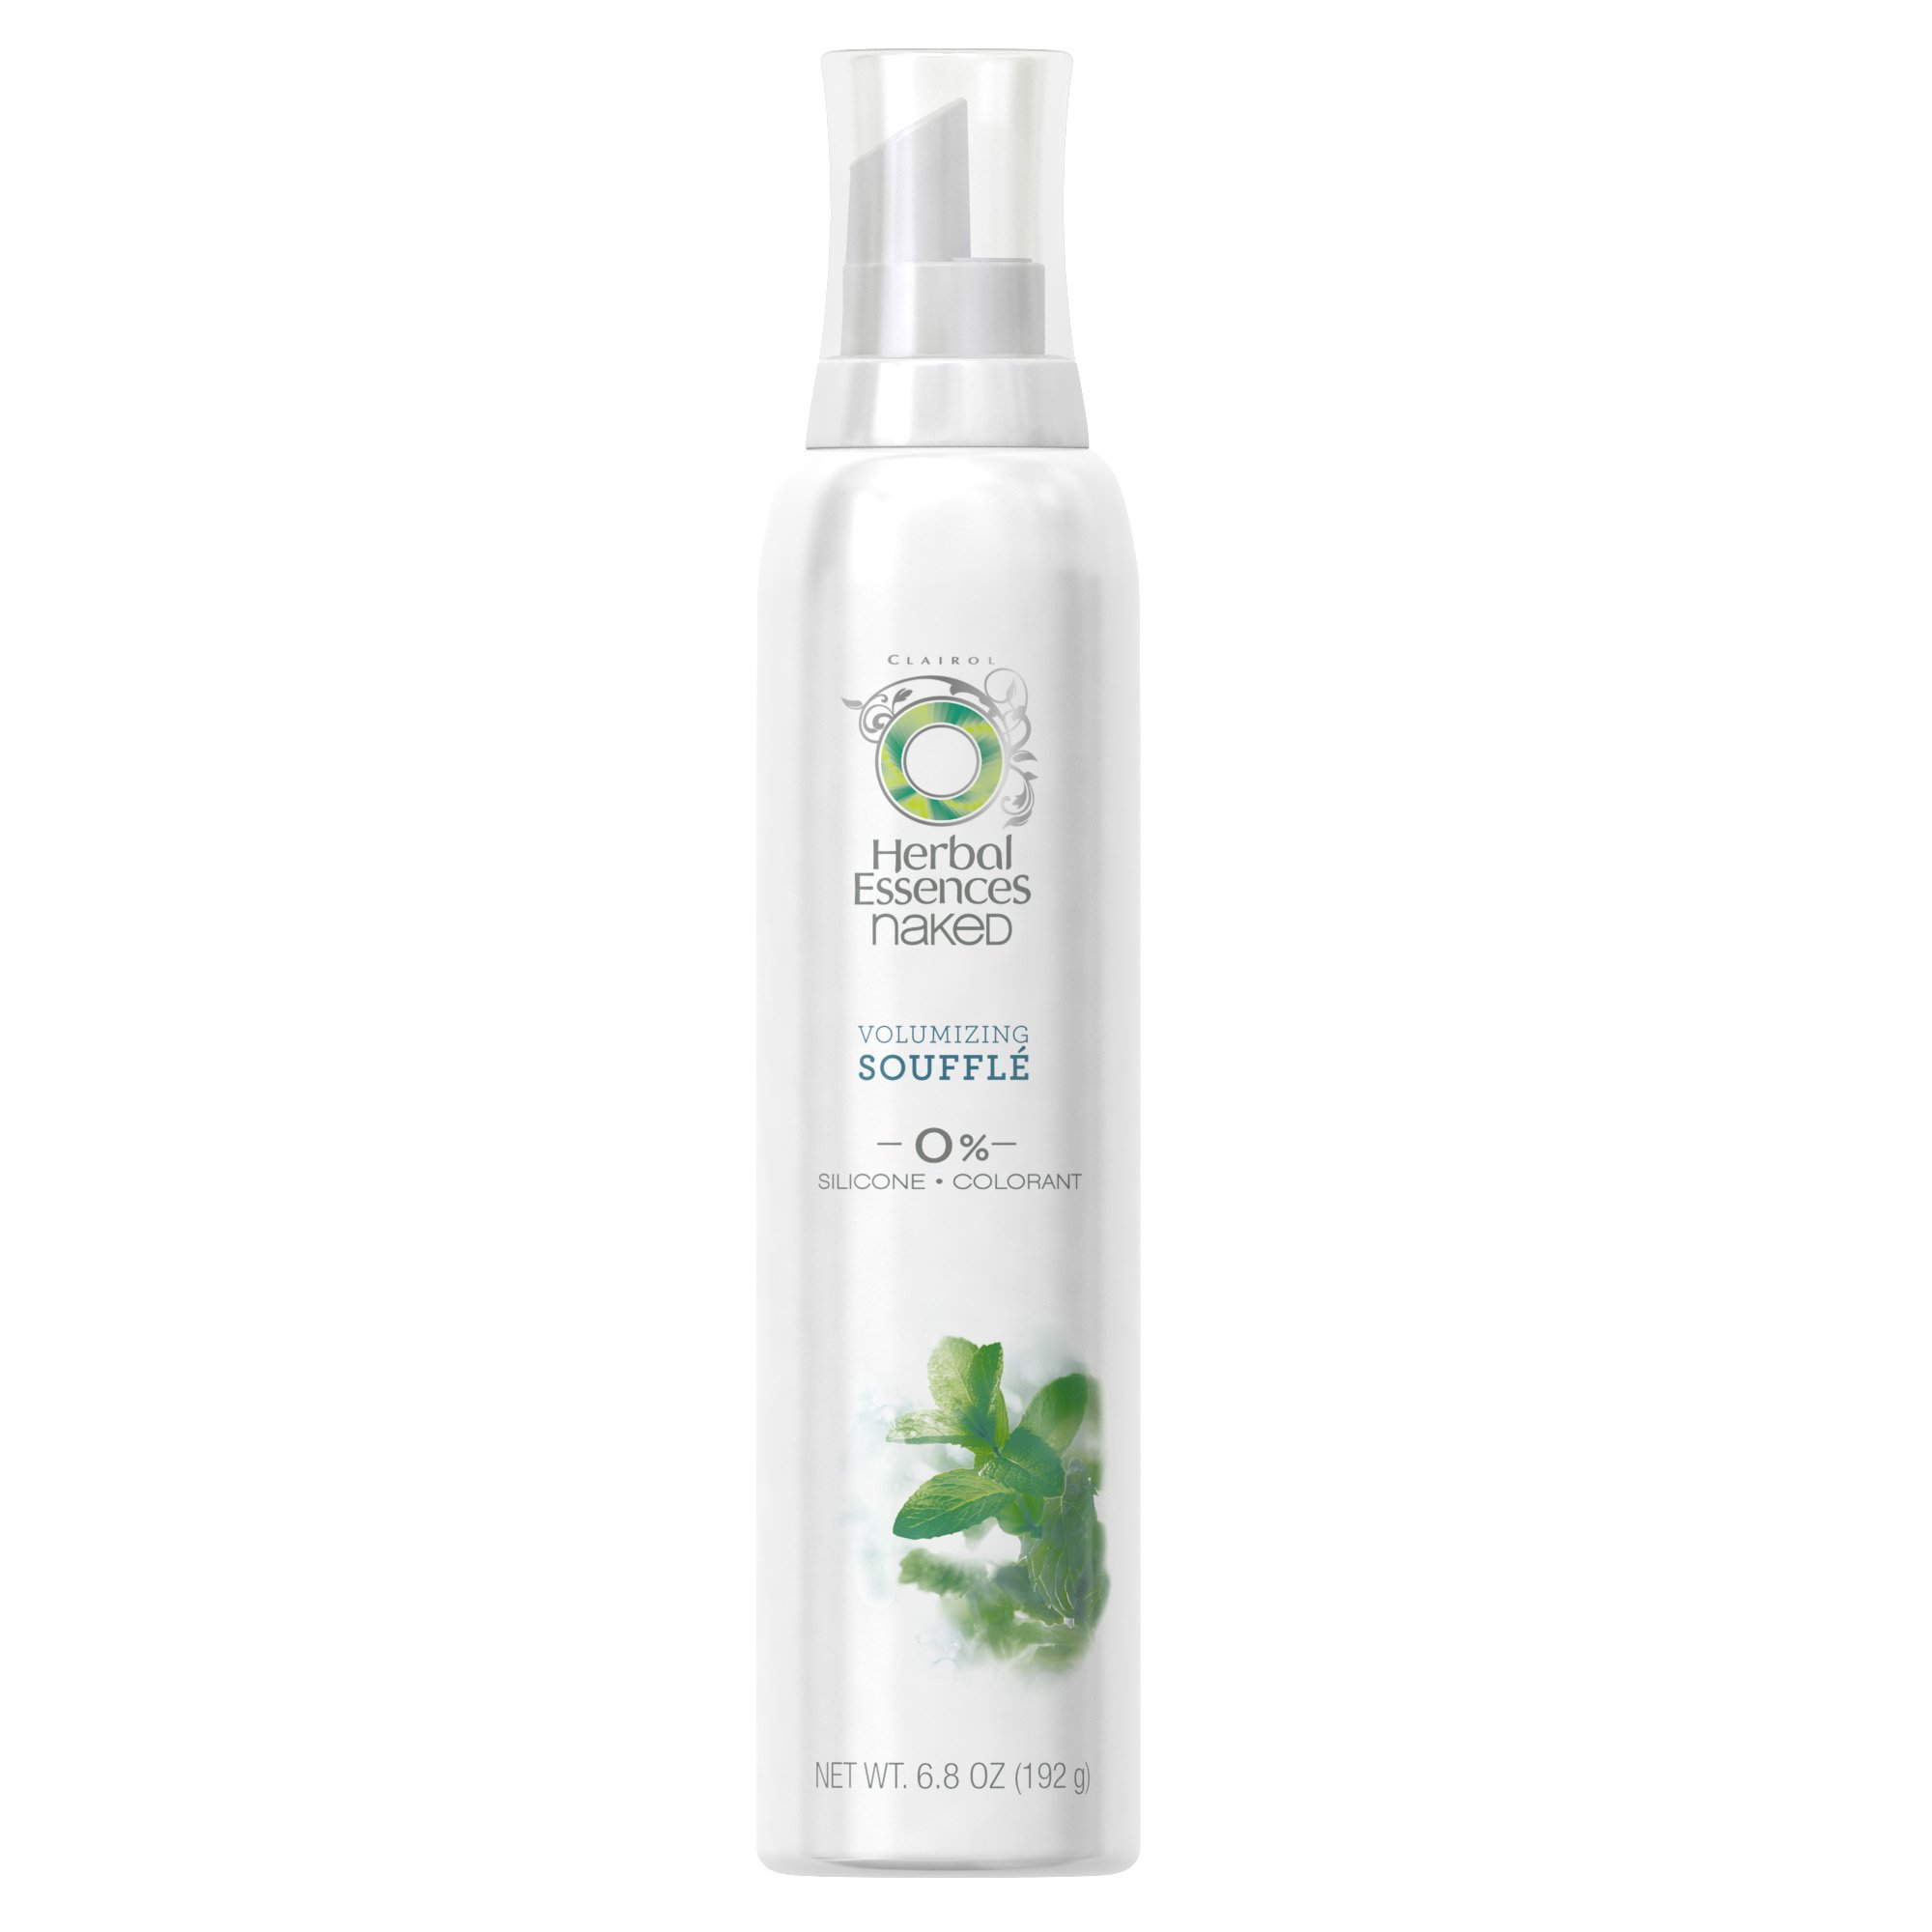 Herbal Essences Naked Volumizing Souffle 6.8 Oz